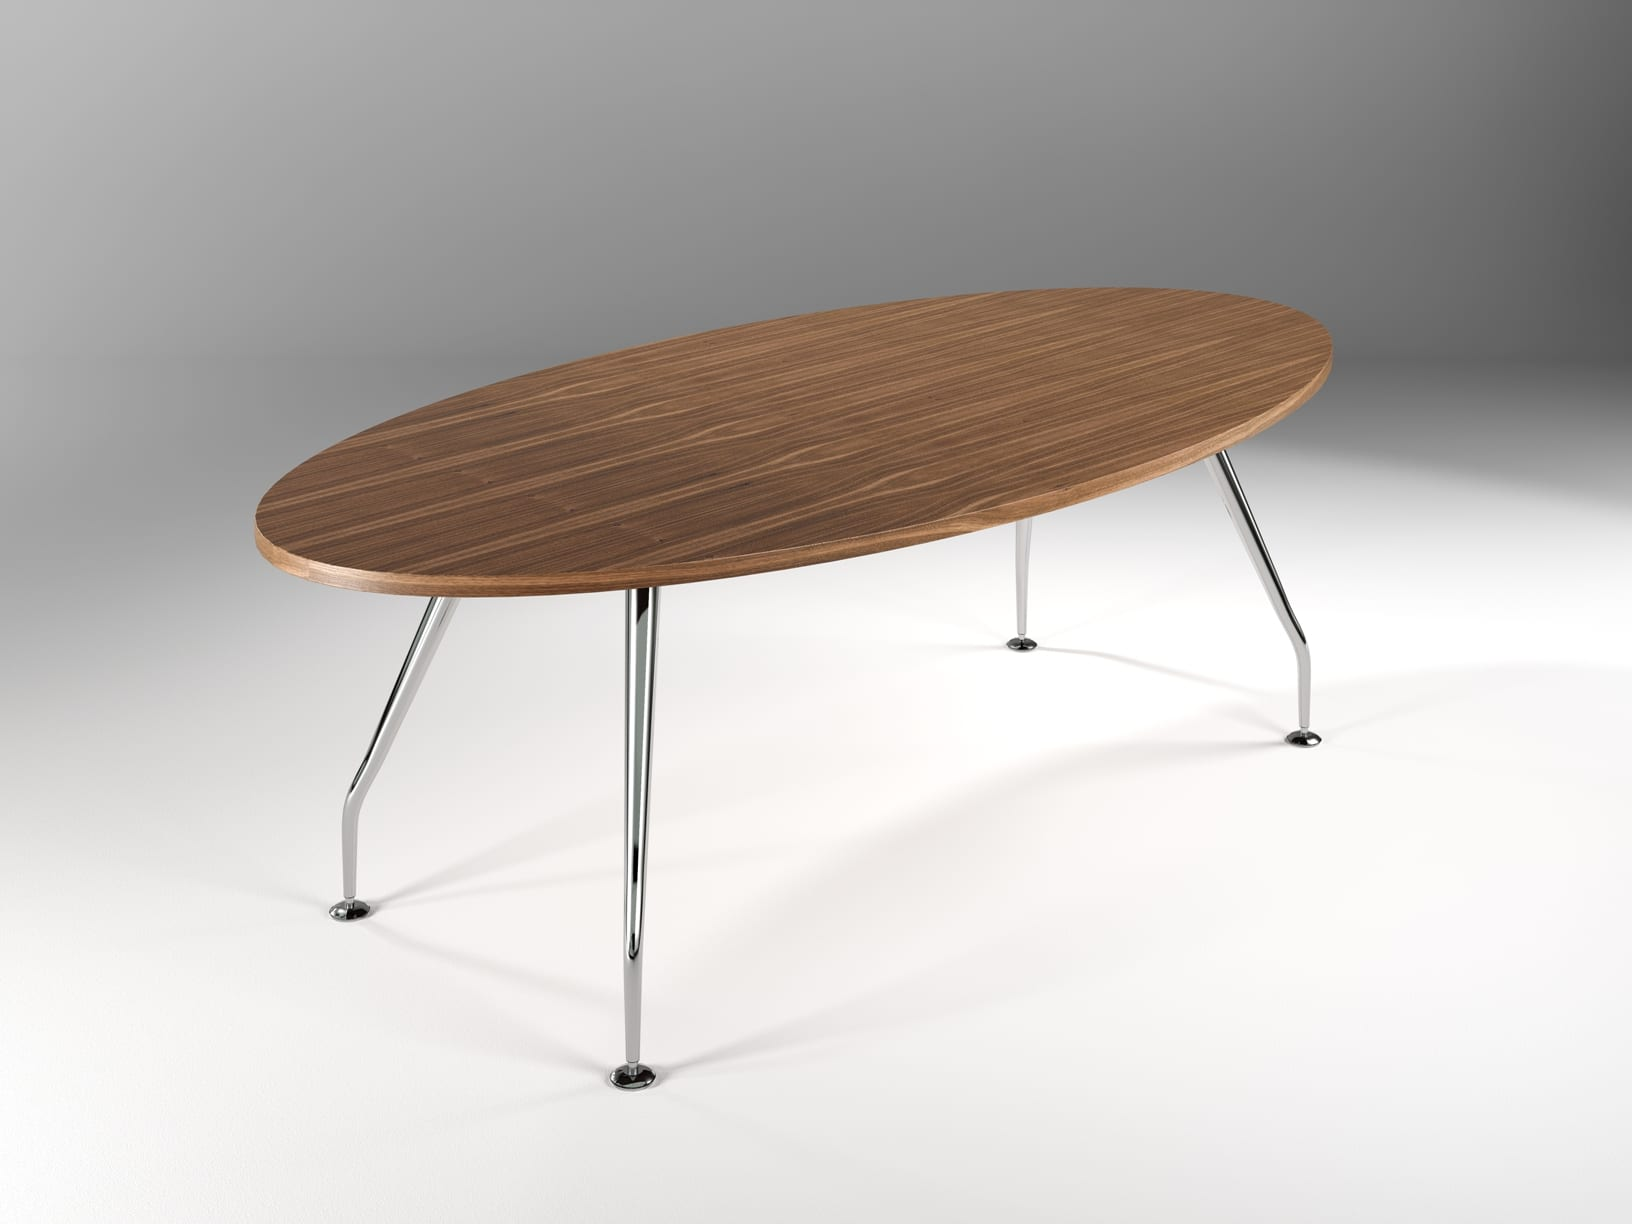 2400 OVAL TABLE – VIEW 1